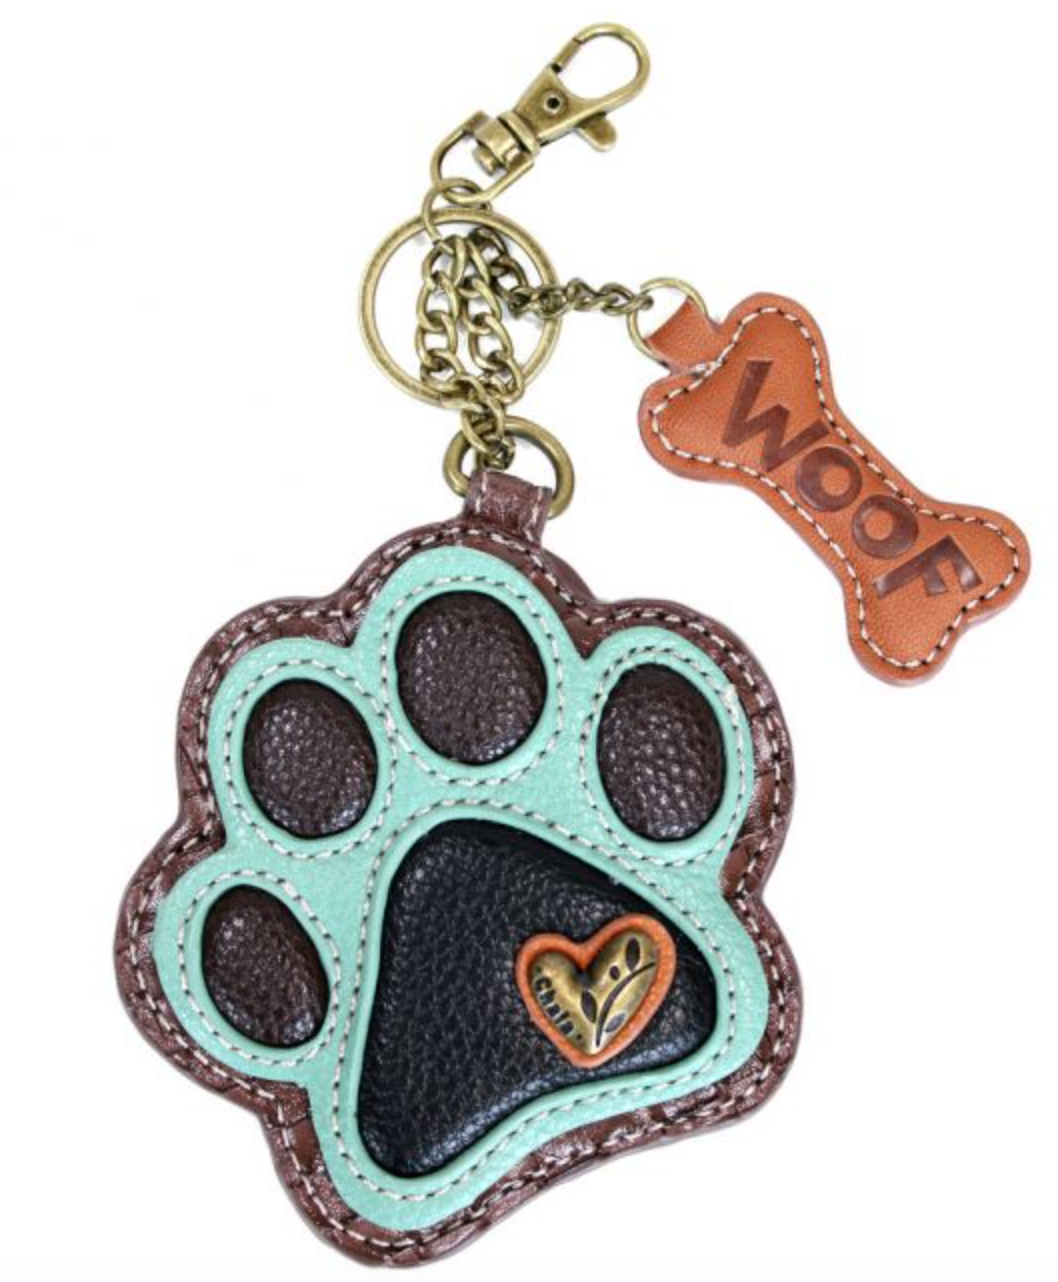 Teal Paw Print Key Fob/Coin Purse